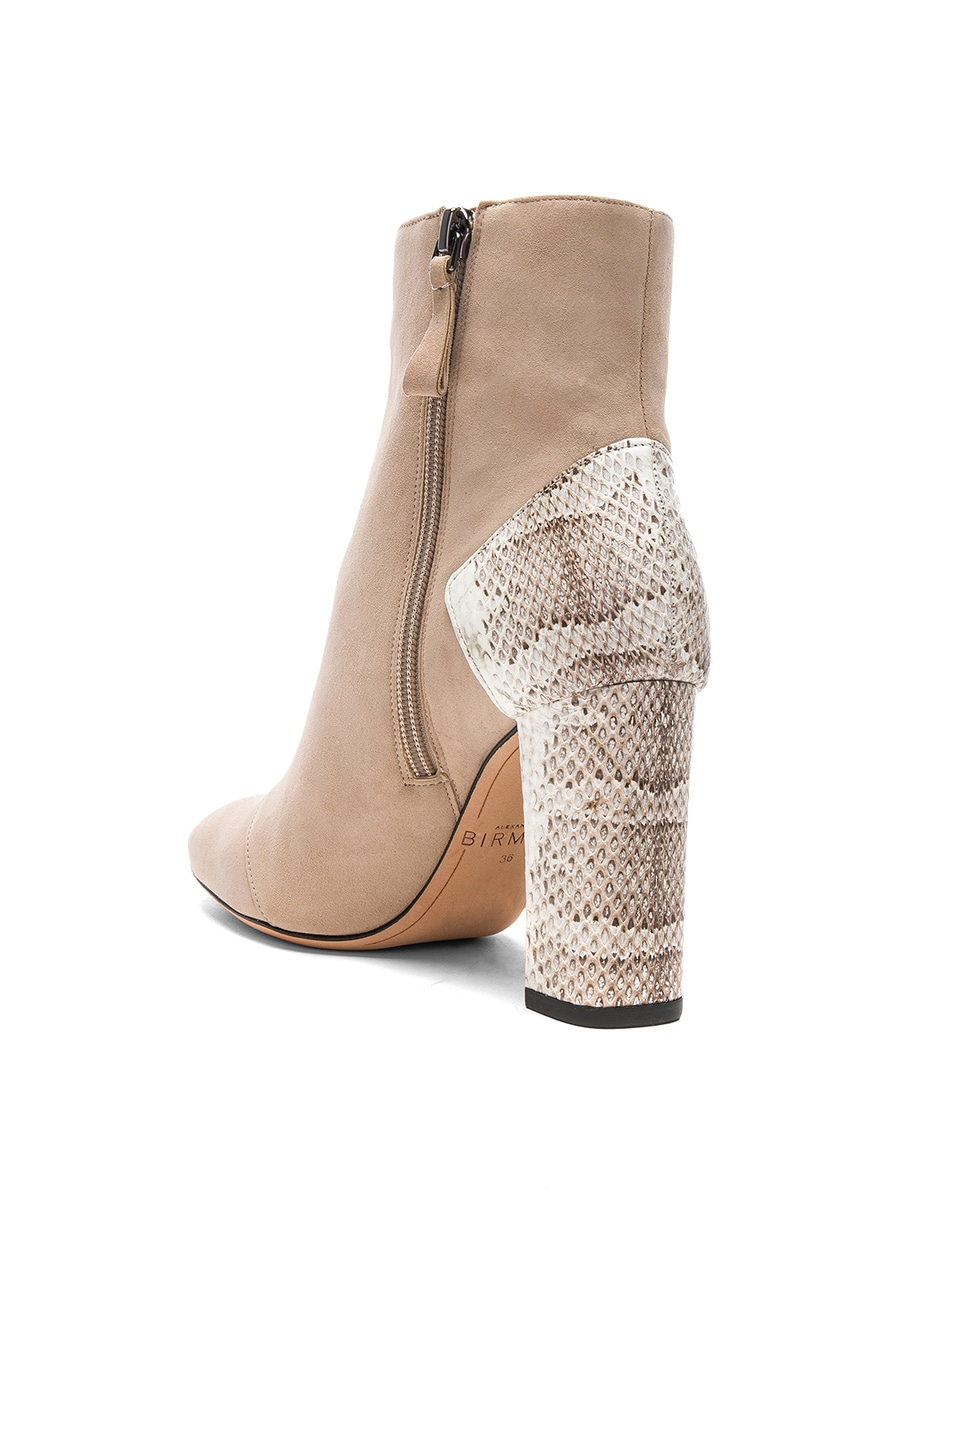 ALEXANDRE BIRMAN Suede Estella Python Boots in Neutrals,Animal Print.